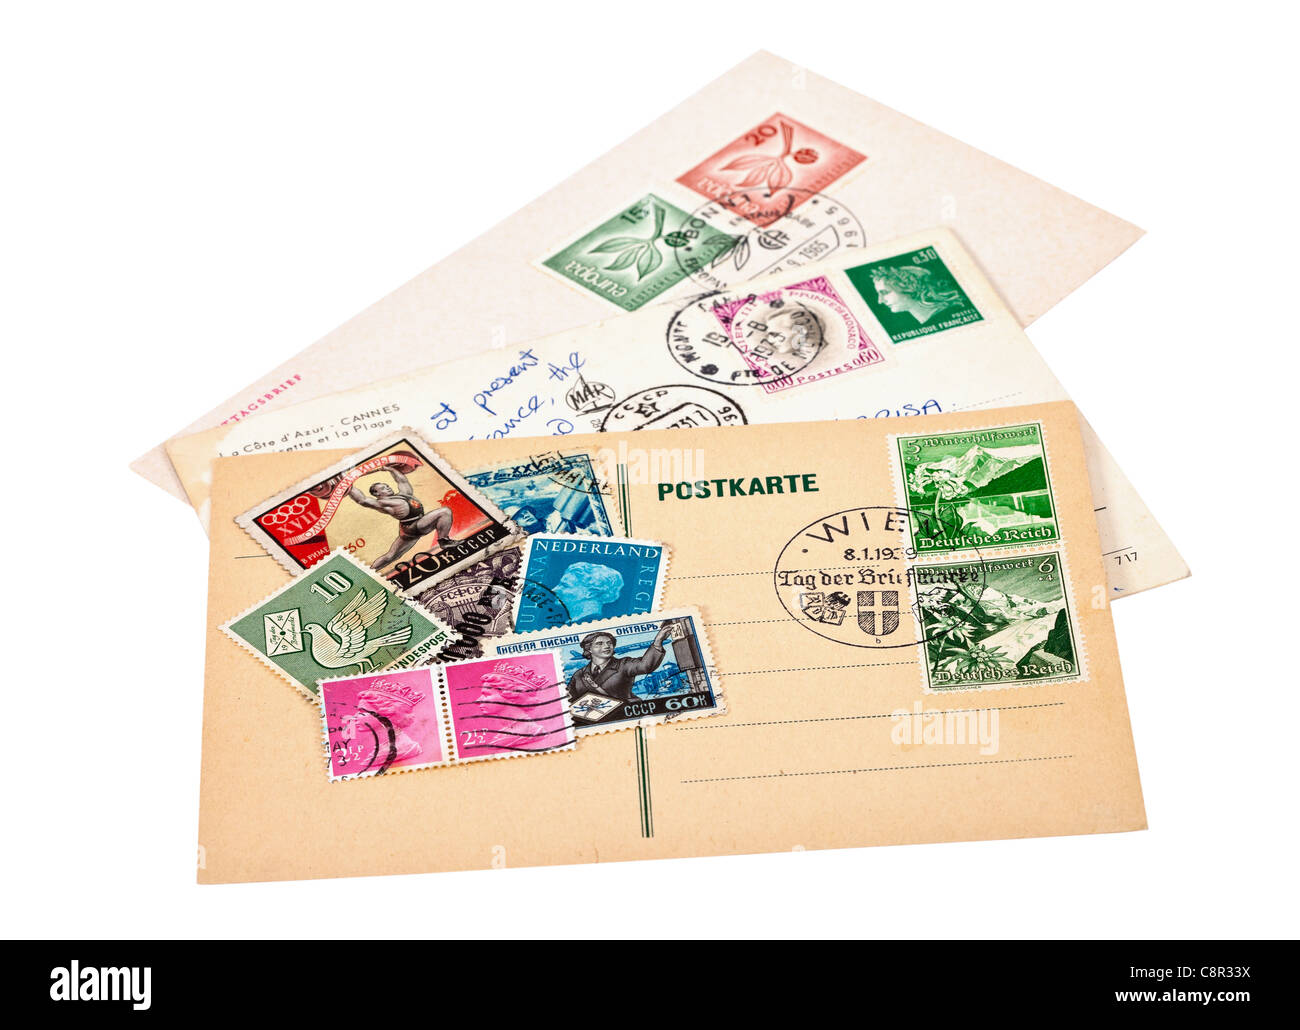 Postage stamps and postcards on white background - Stock Image